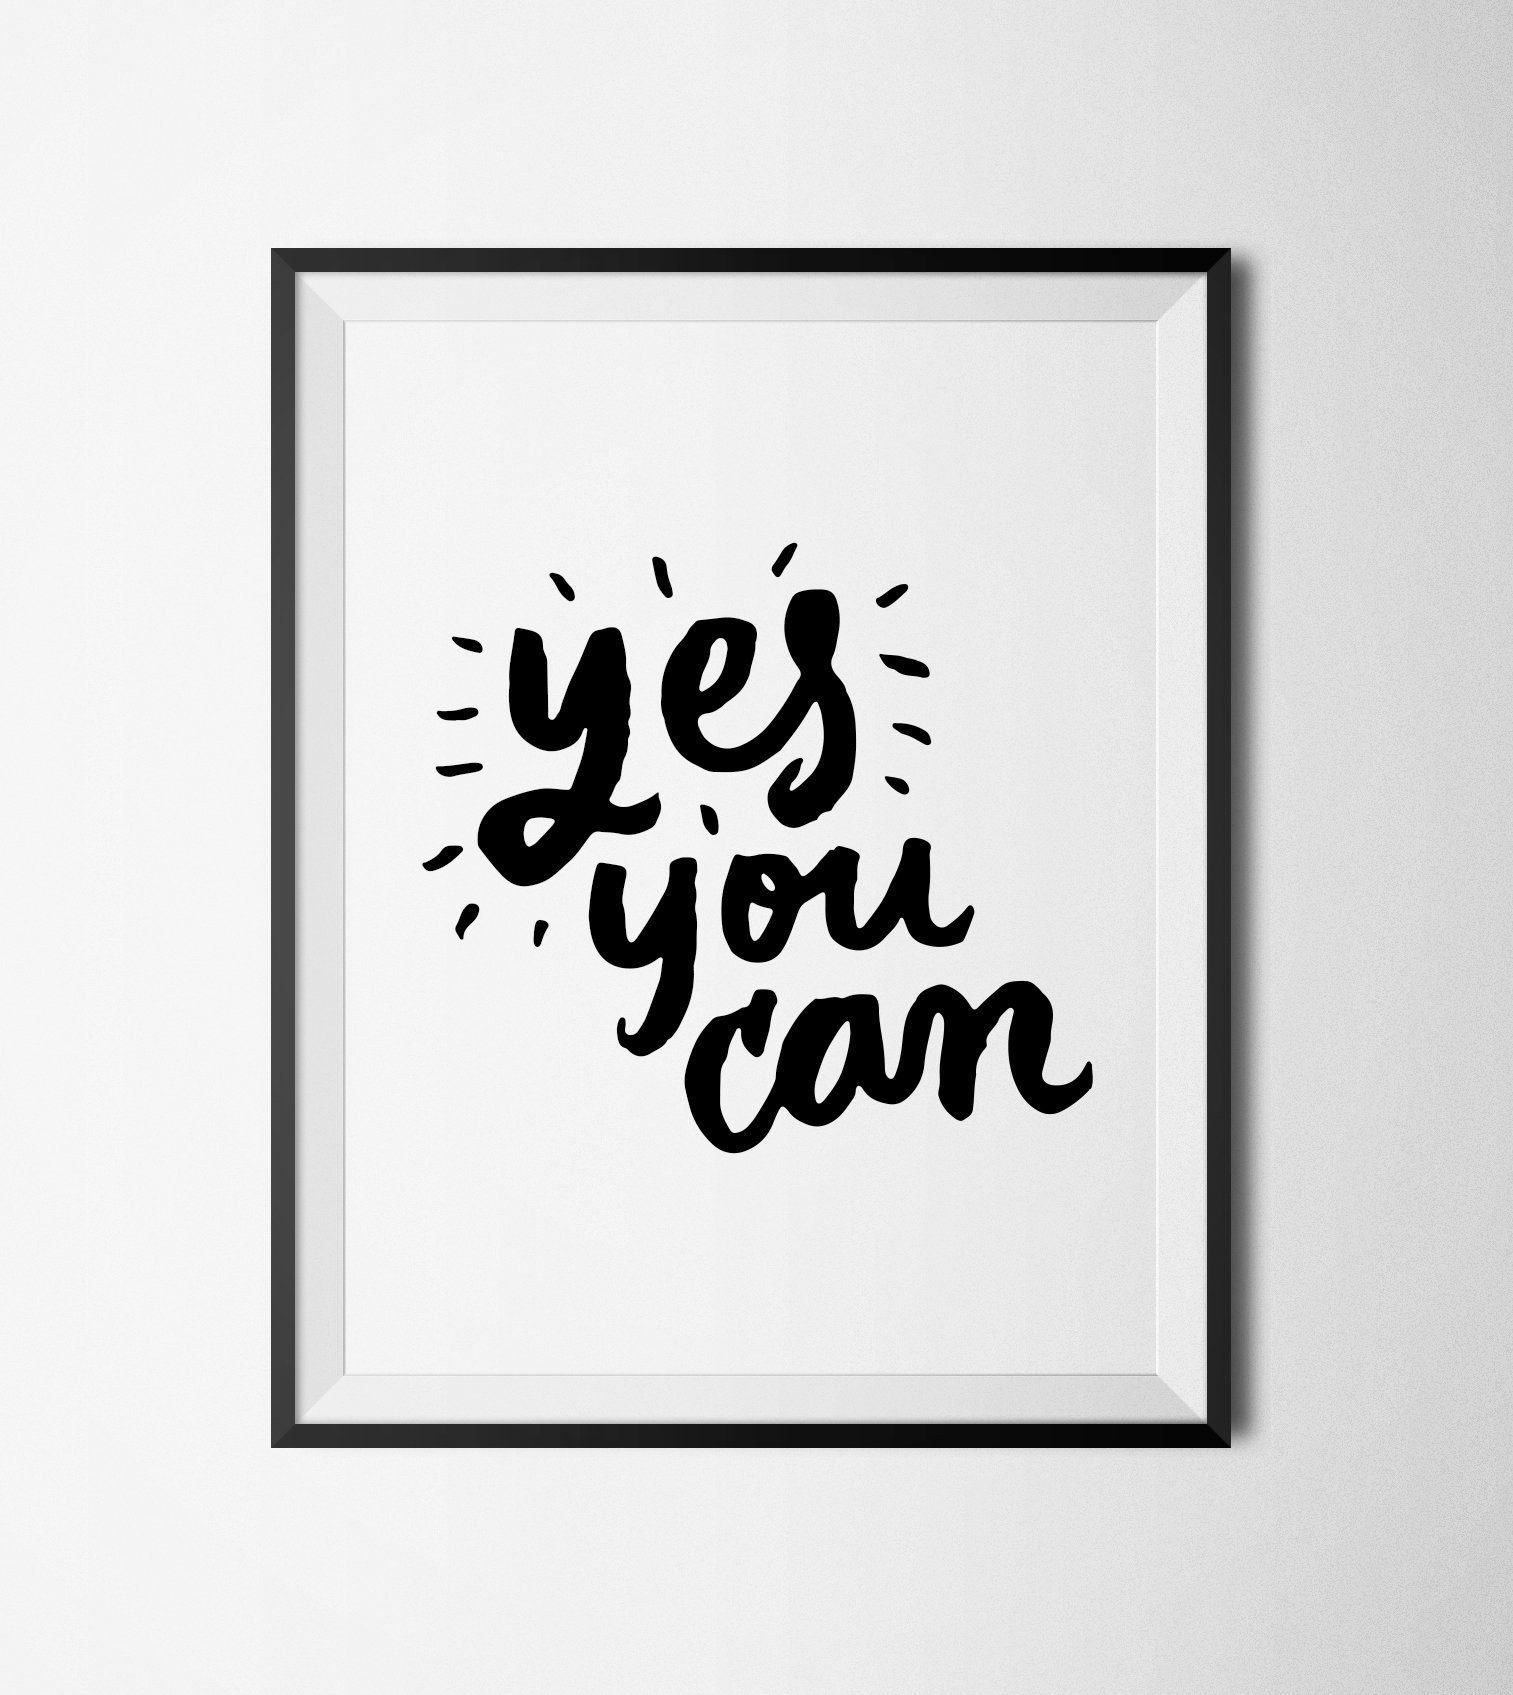 picture regarding Printable Posters identified as Motivational Poster, Certainly Oneself Can Printable Estimate, Typography Wall Artwork, Printable Artwork, Typography Print, Quotation Posters bought by way of Deliver A Wake Studio